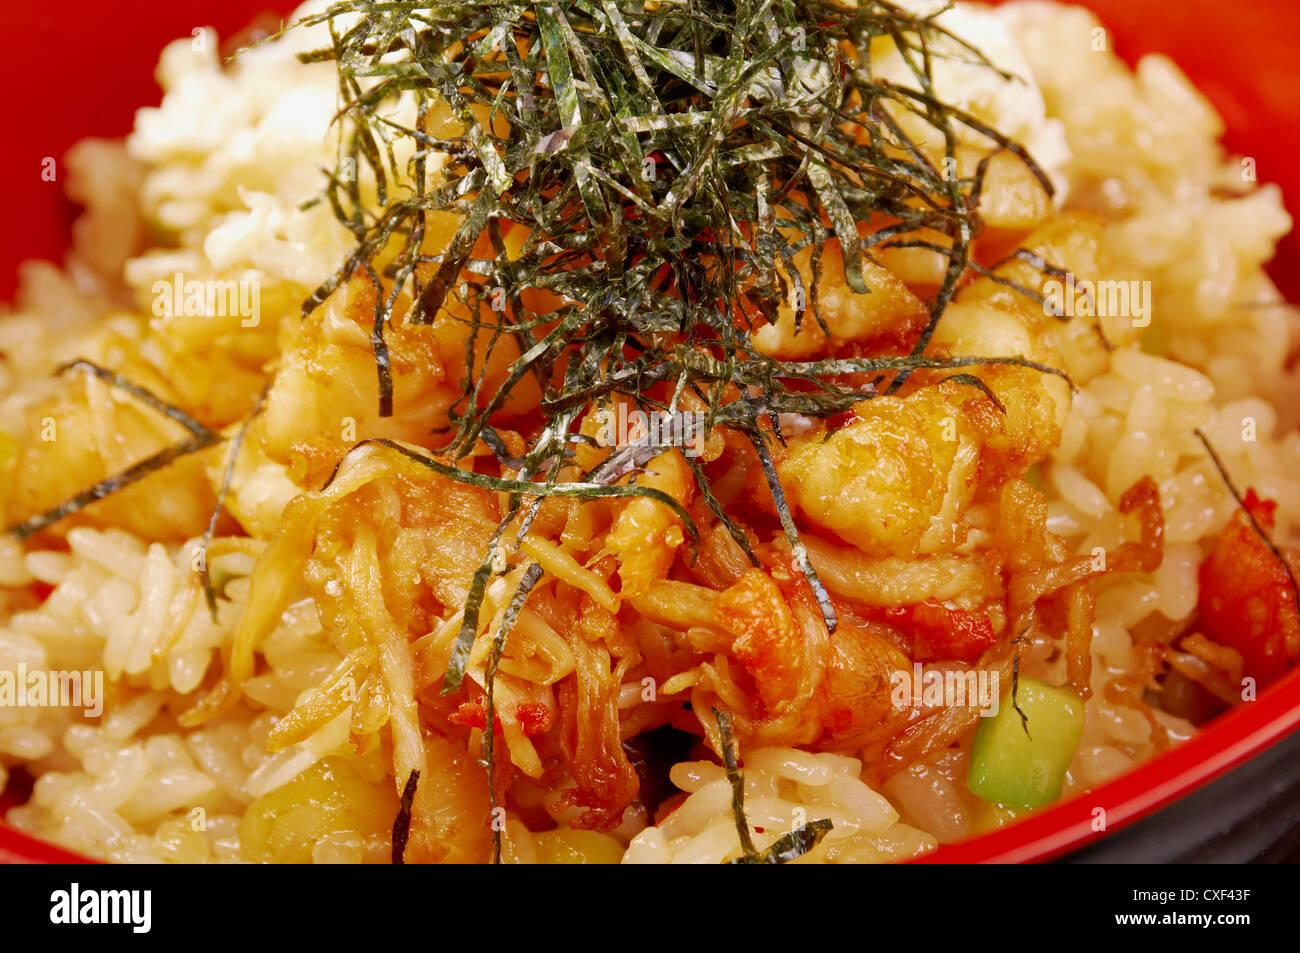 Seafood tyahan or rice with seafood 44